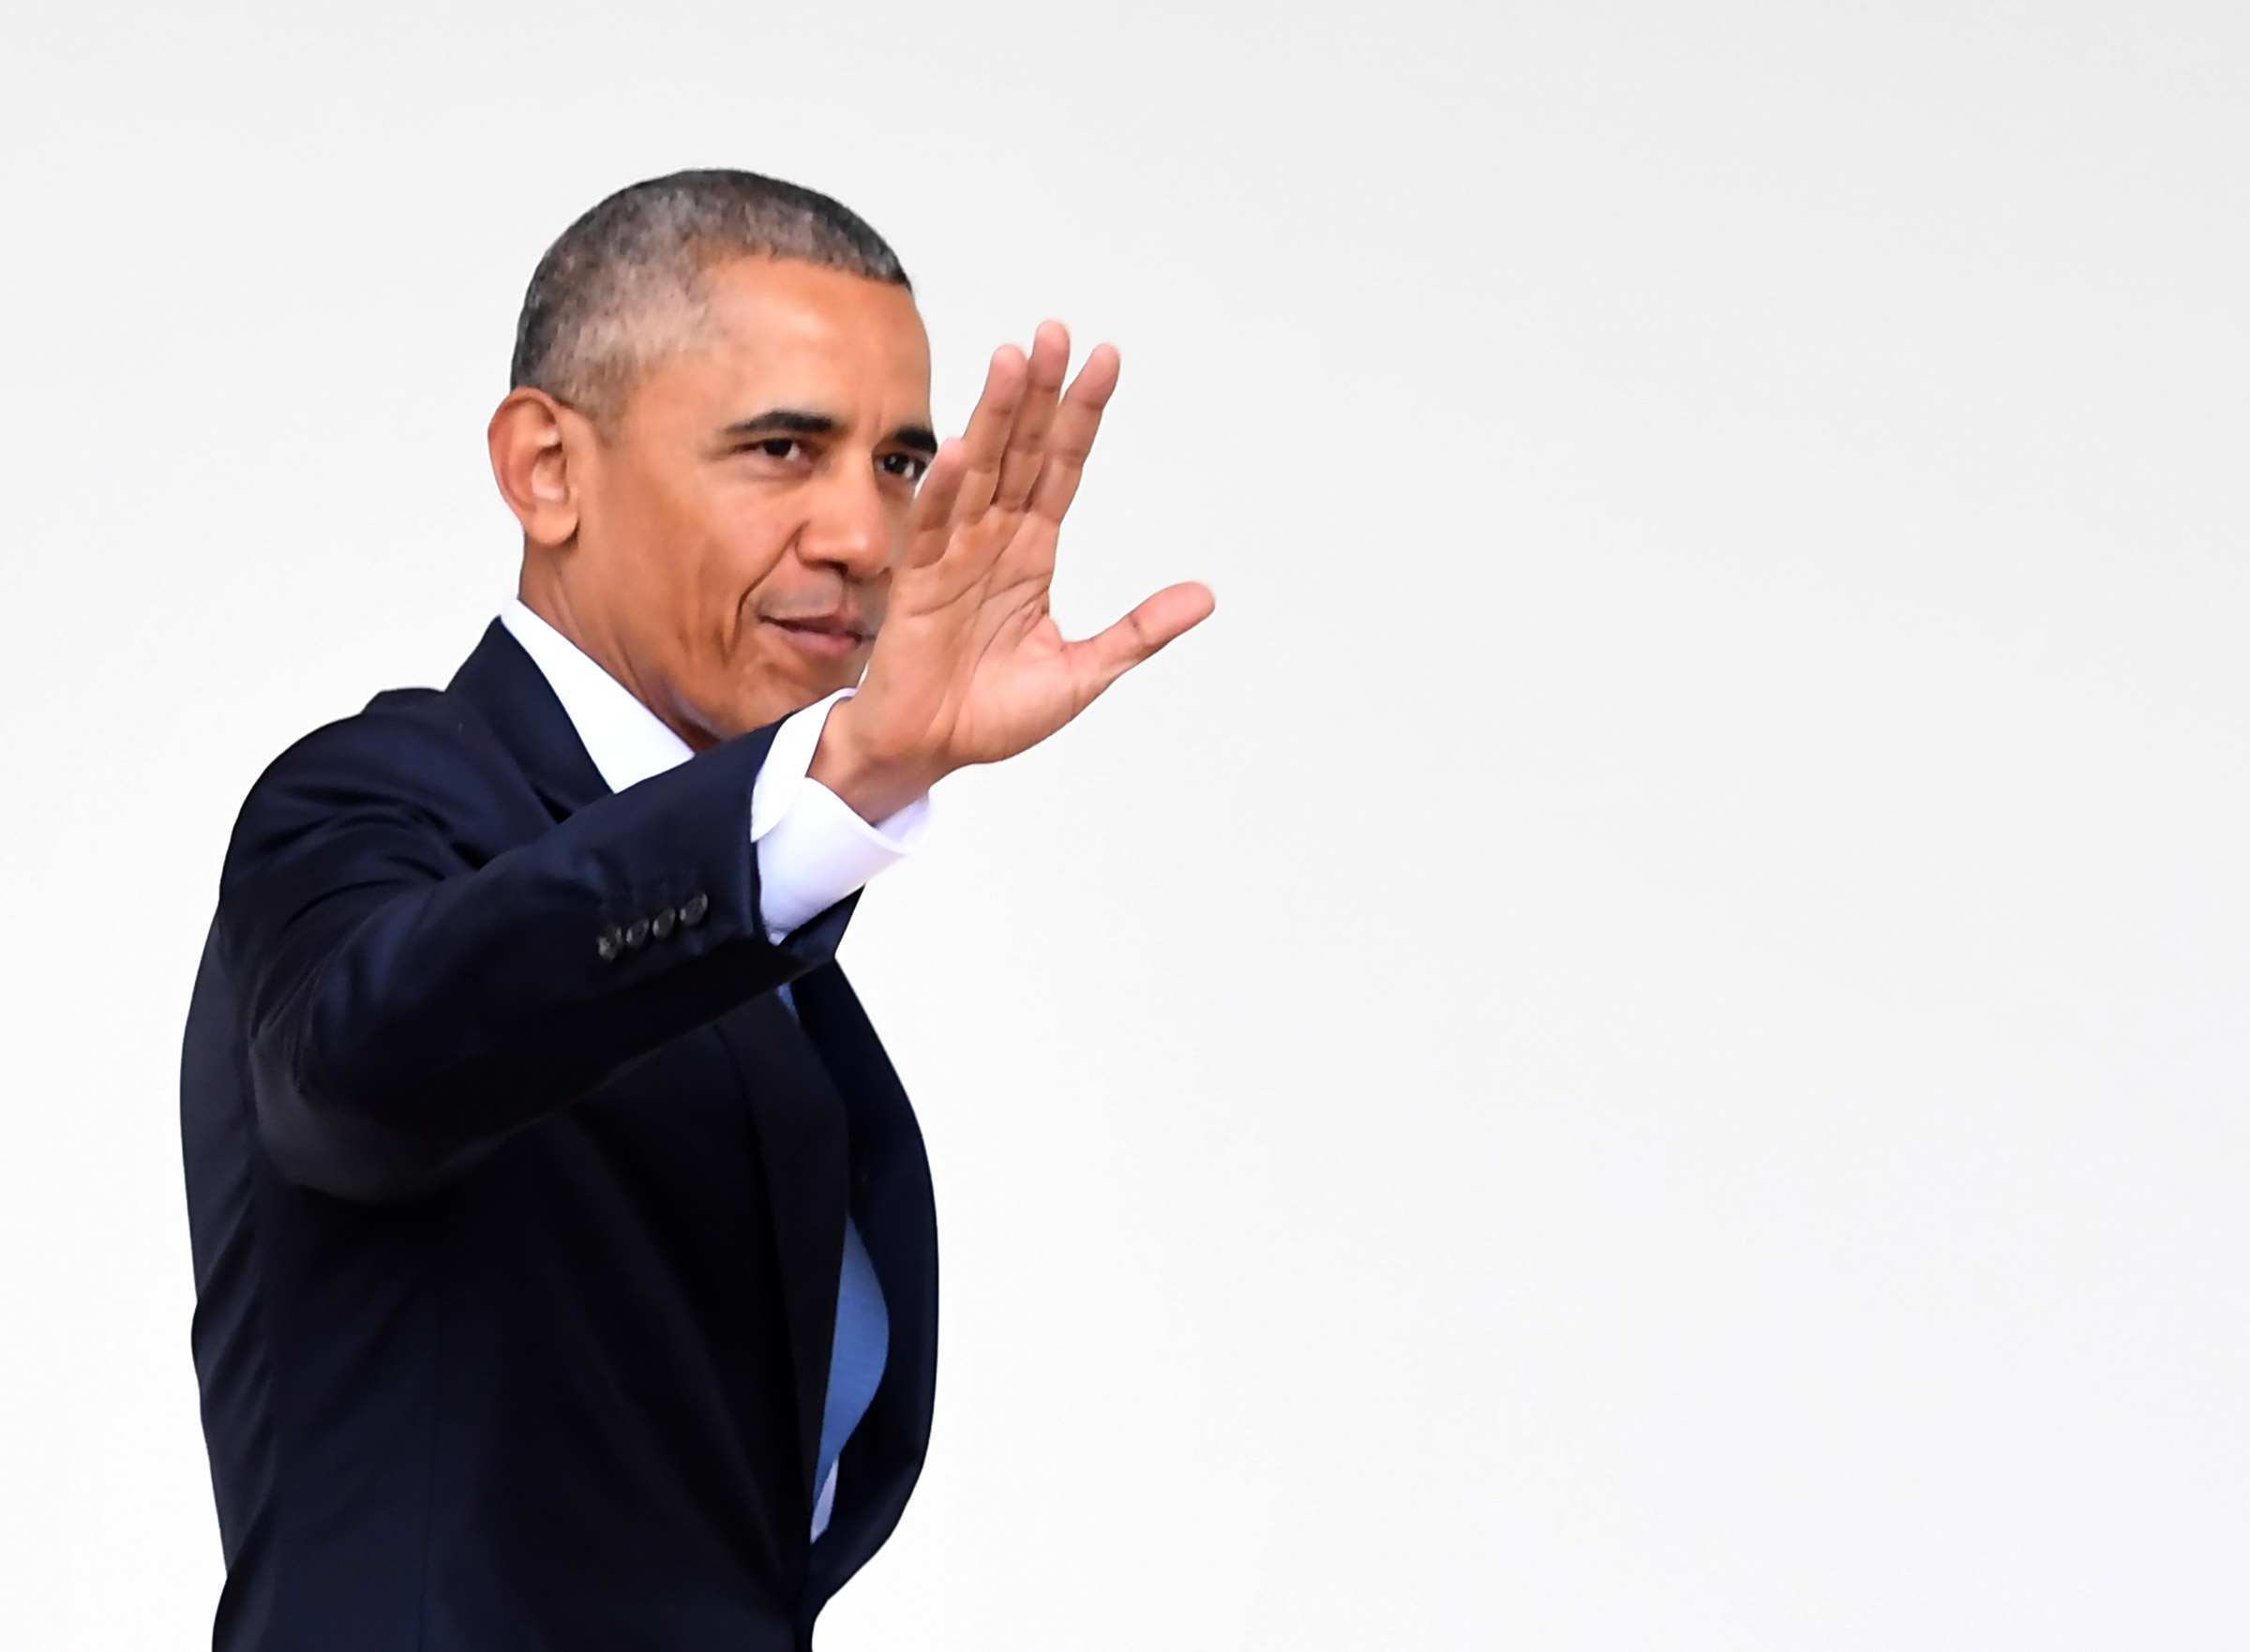 Video games owe a lot to President Obama's administration